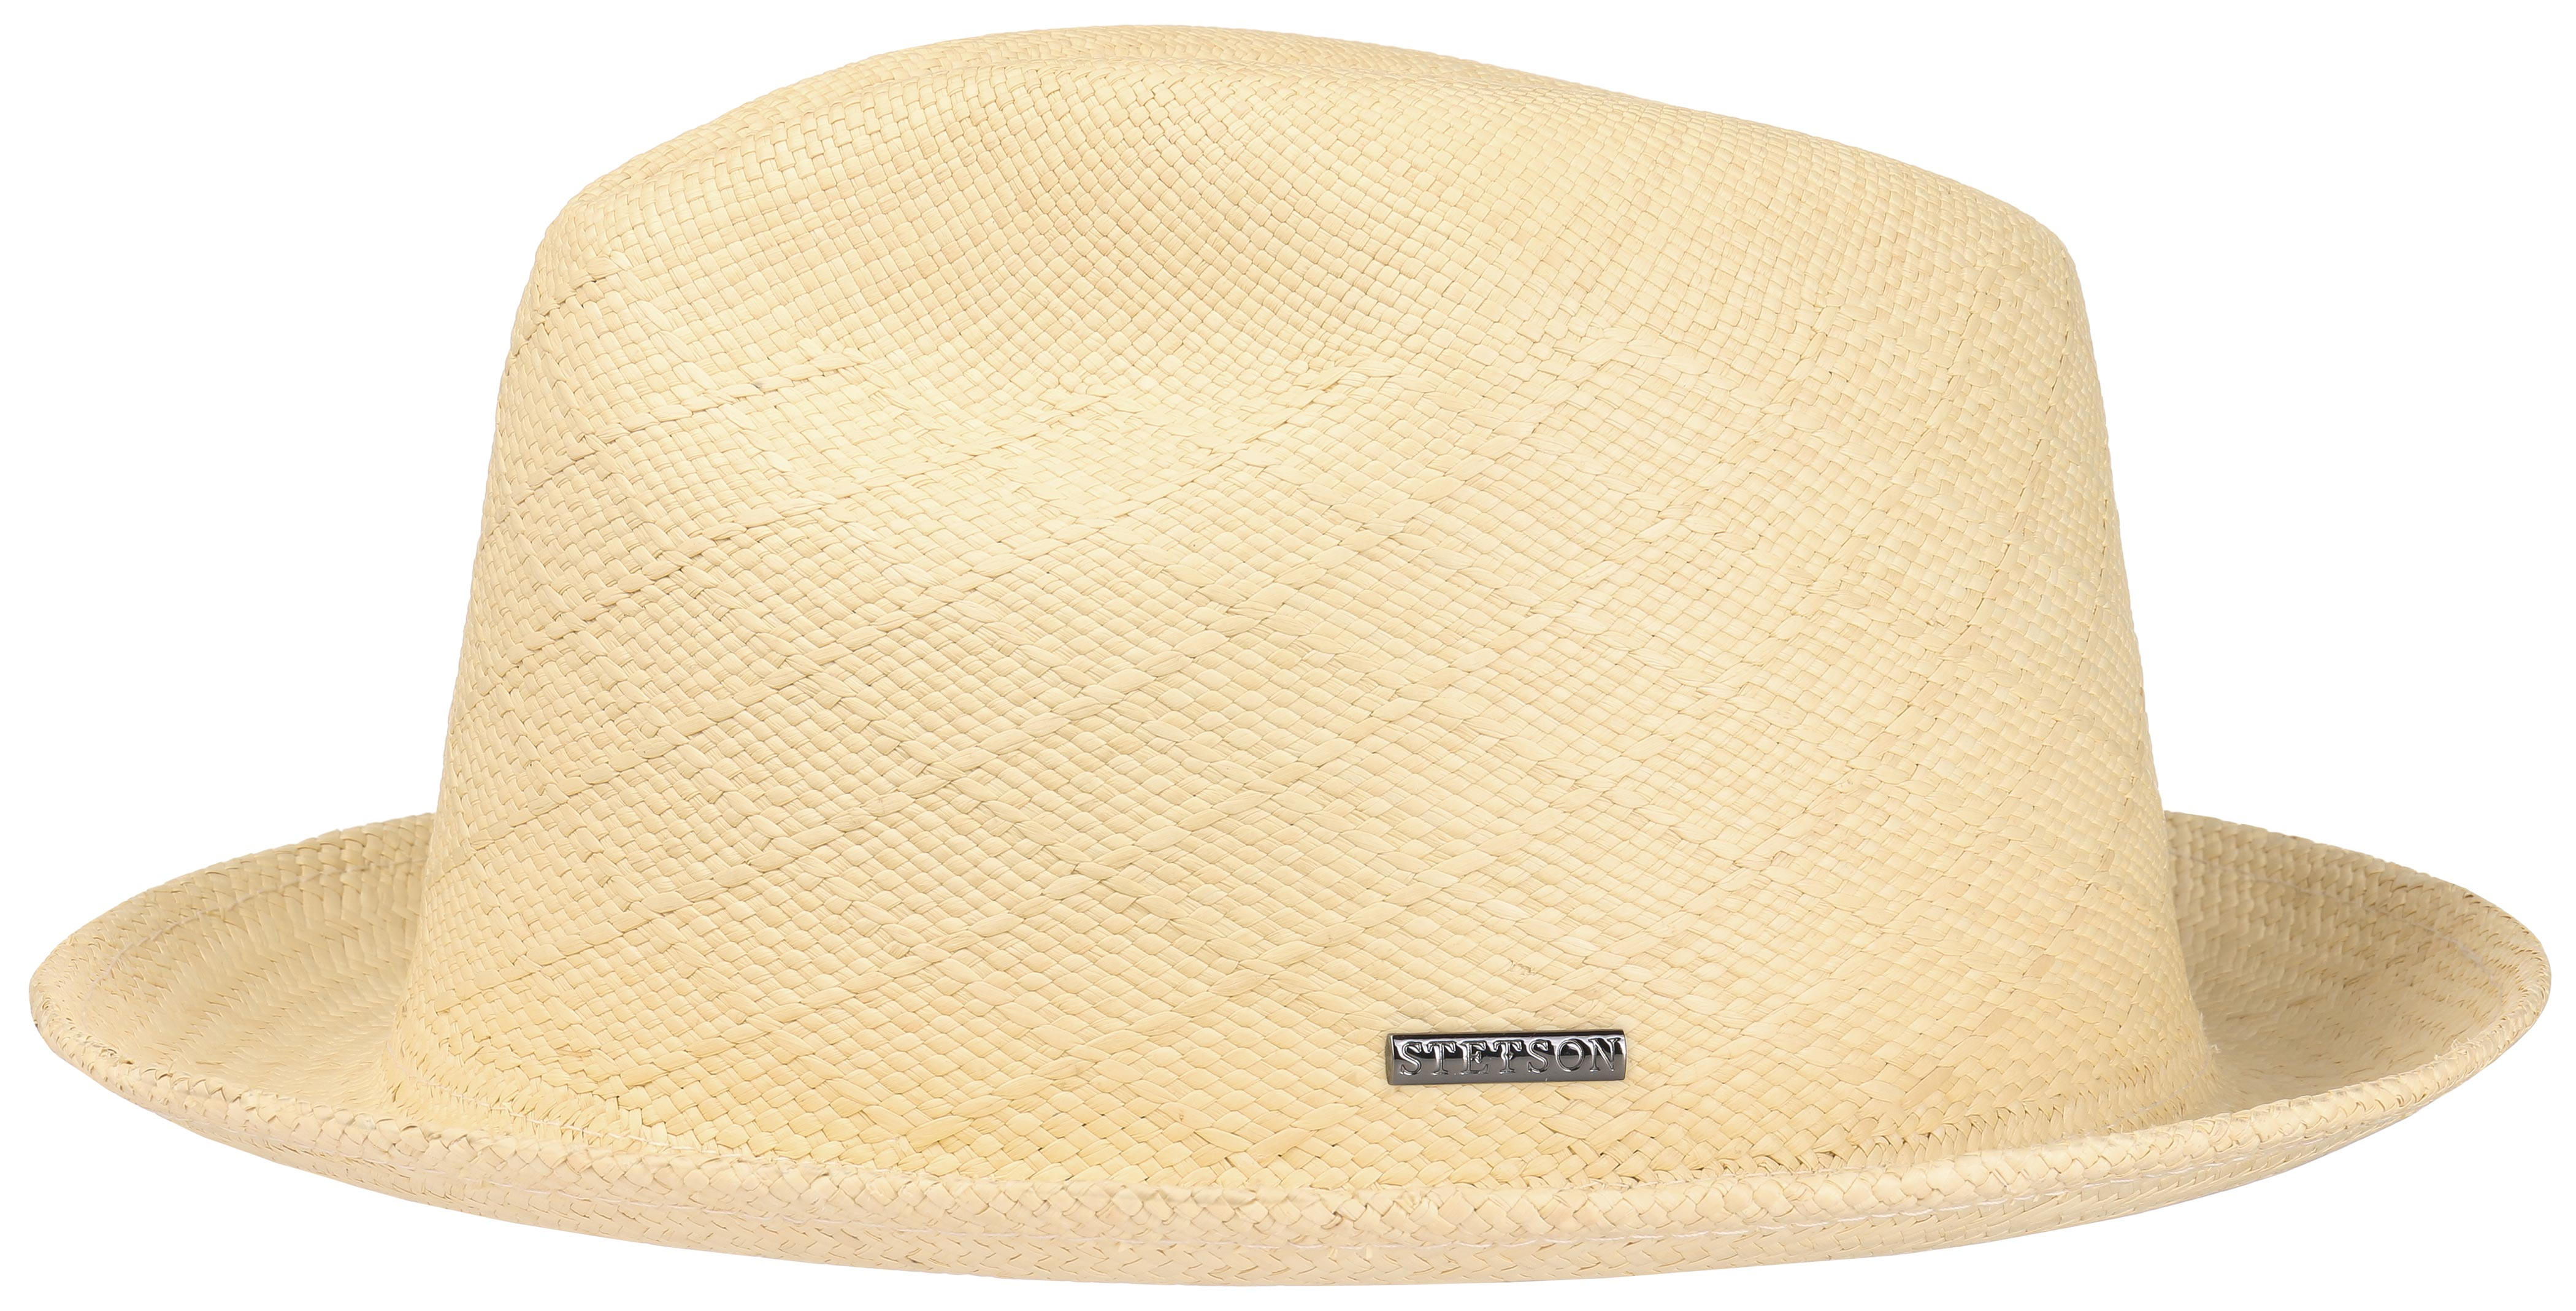 Stetson Panama Player Natur